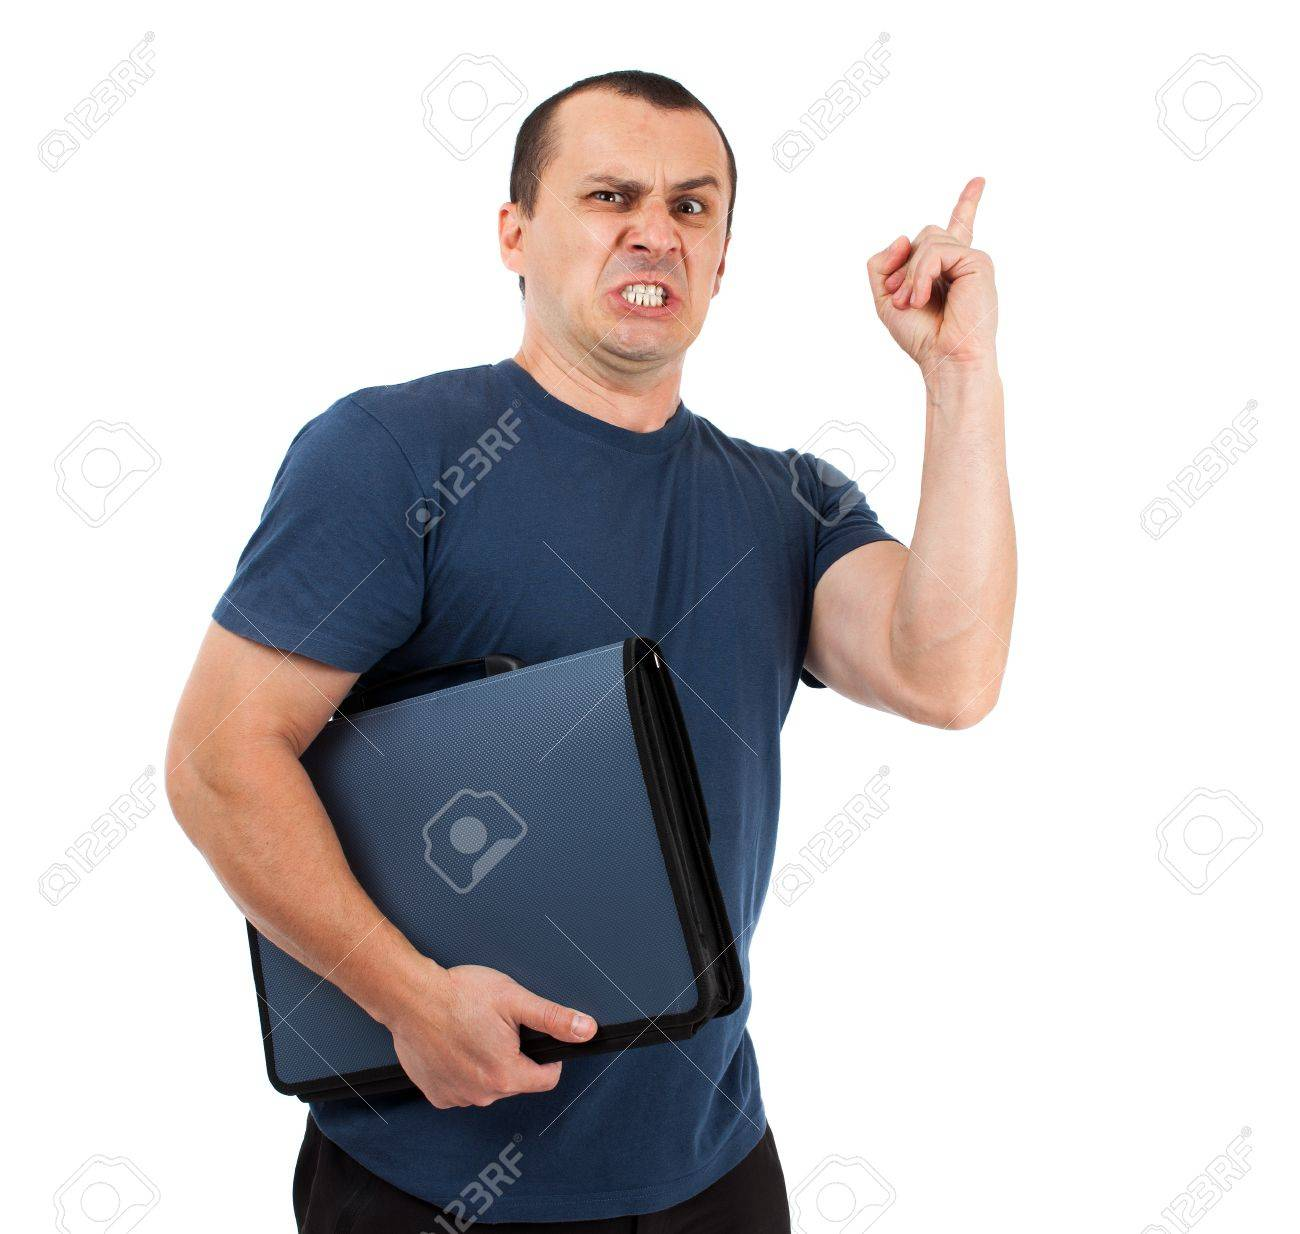 Angry man with briefcase isolated on white background Stock Photo - 15609926